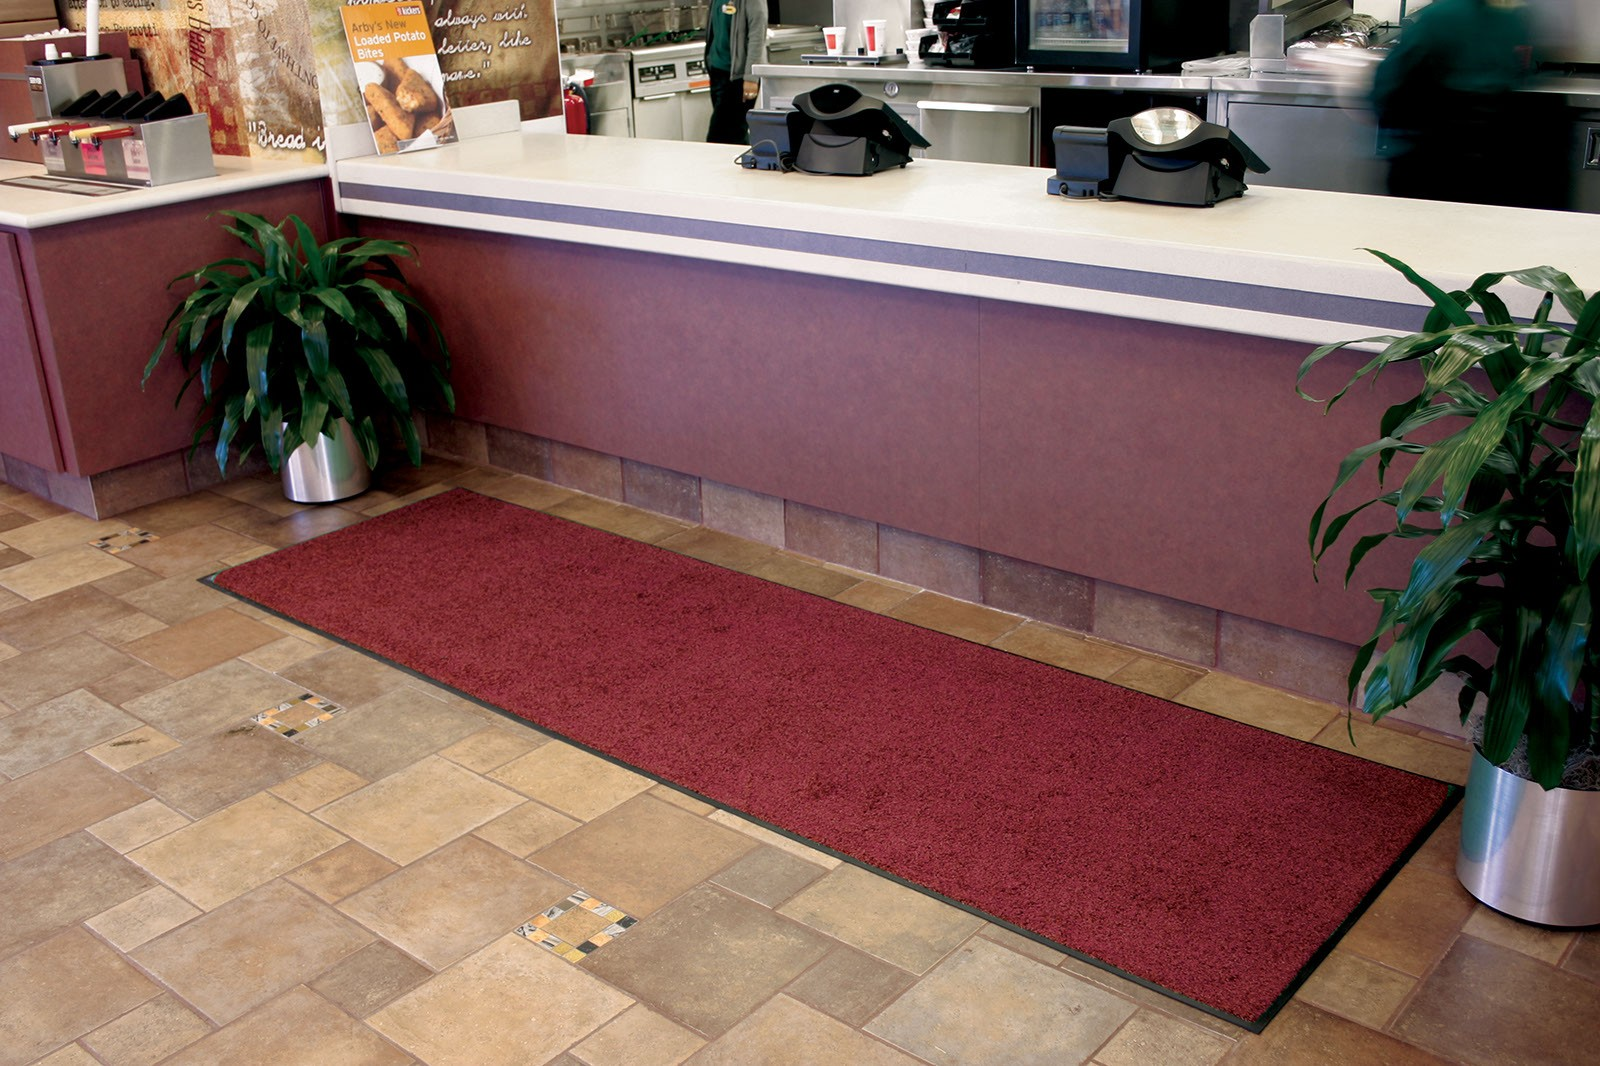 Duramat Indoor Carpet Entrance Floor Mat Floor Mat Systems